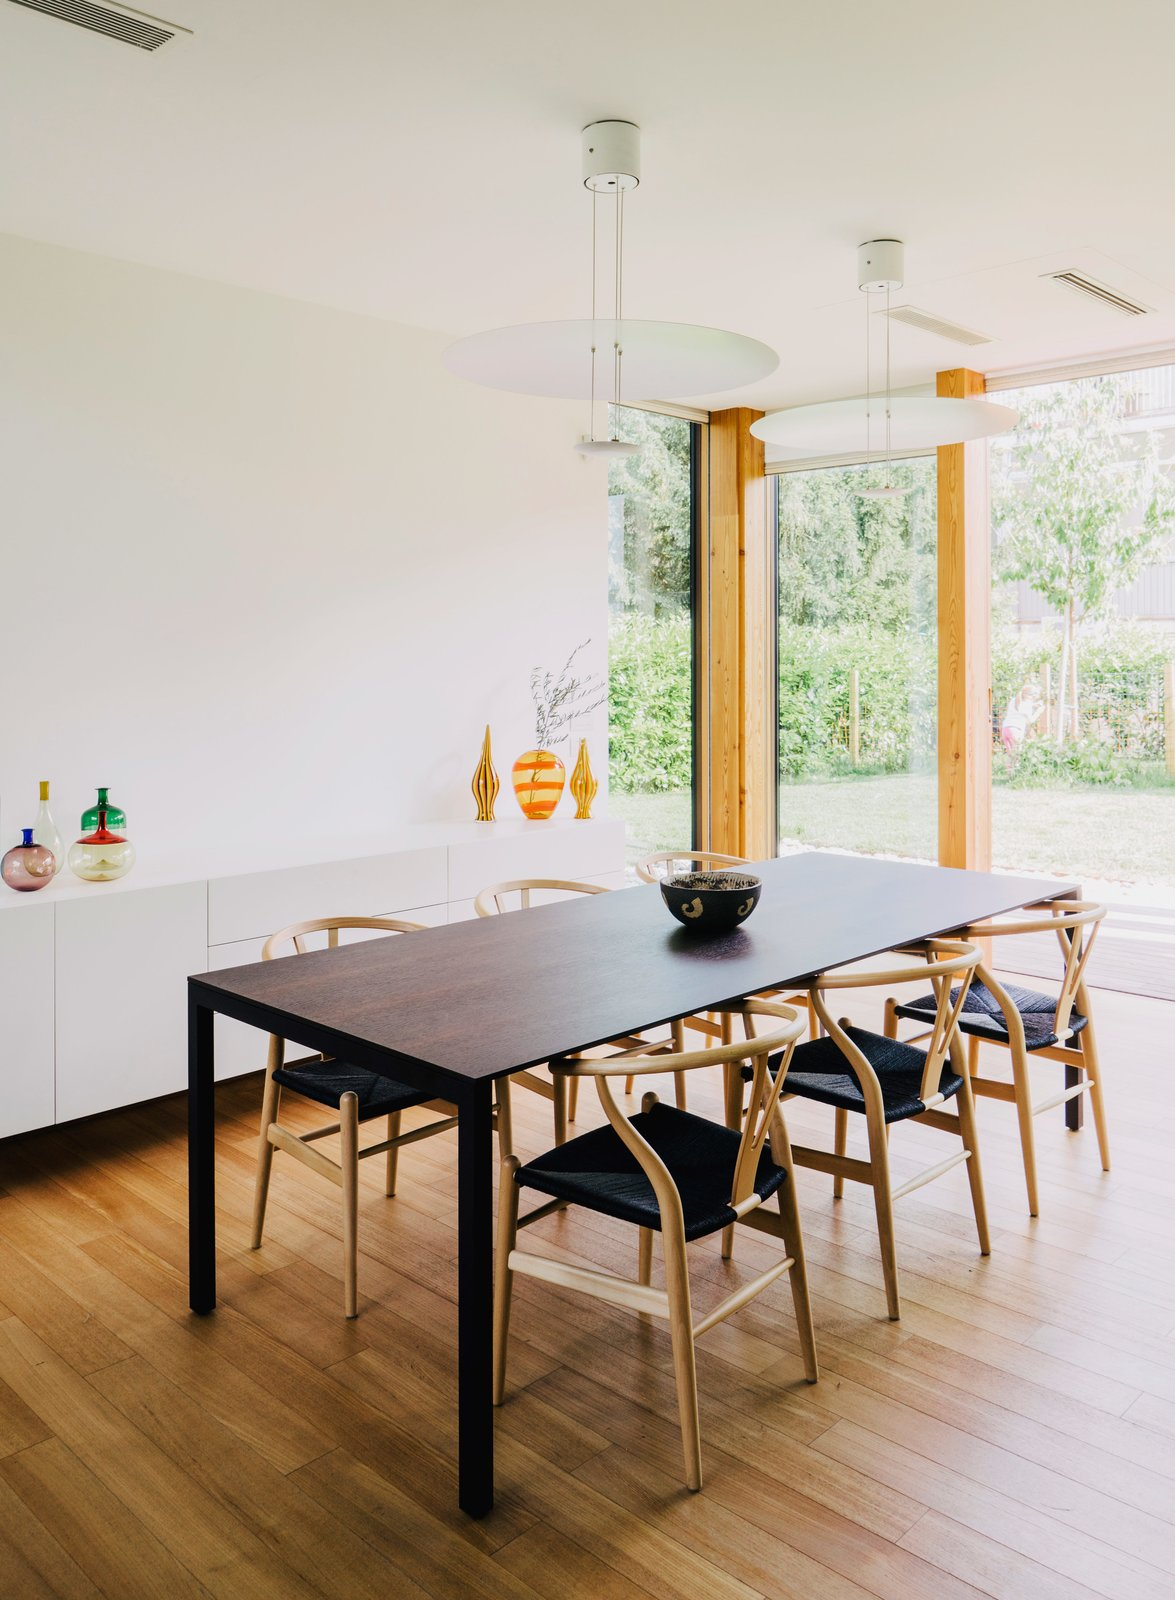 Dining Room, Table, Storage, Chair, Medium Hardwood Floor, and Pendant Lighting In the dining room, Wishbone chairs by Hans J. Wegner surround a 195 Naan table by Piero Lissoni.  In the Home from Could You Share Your Dream Home?